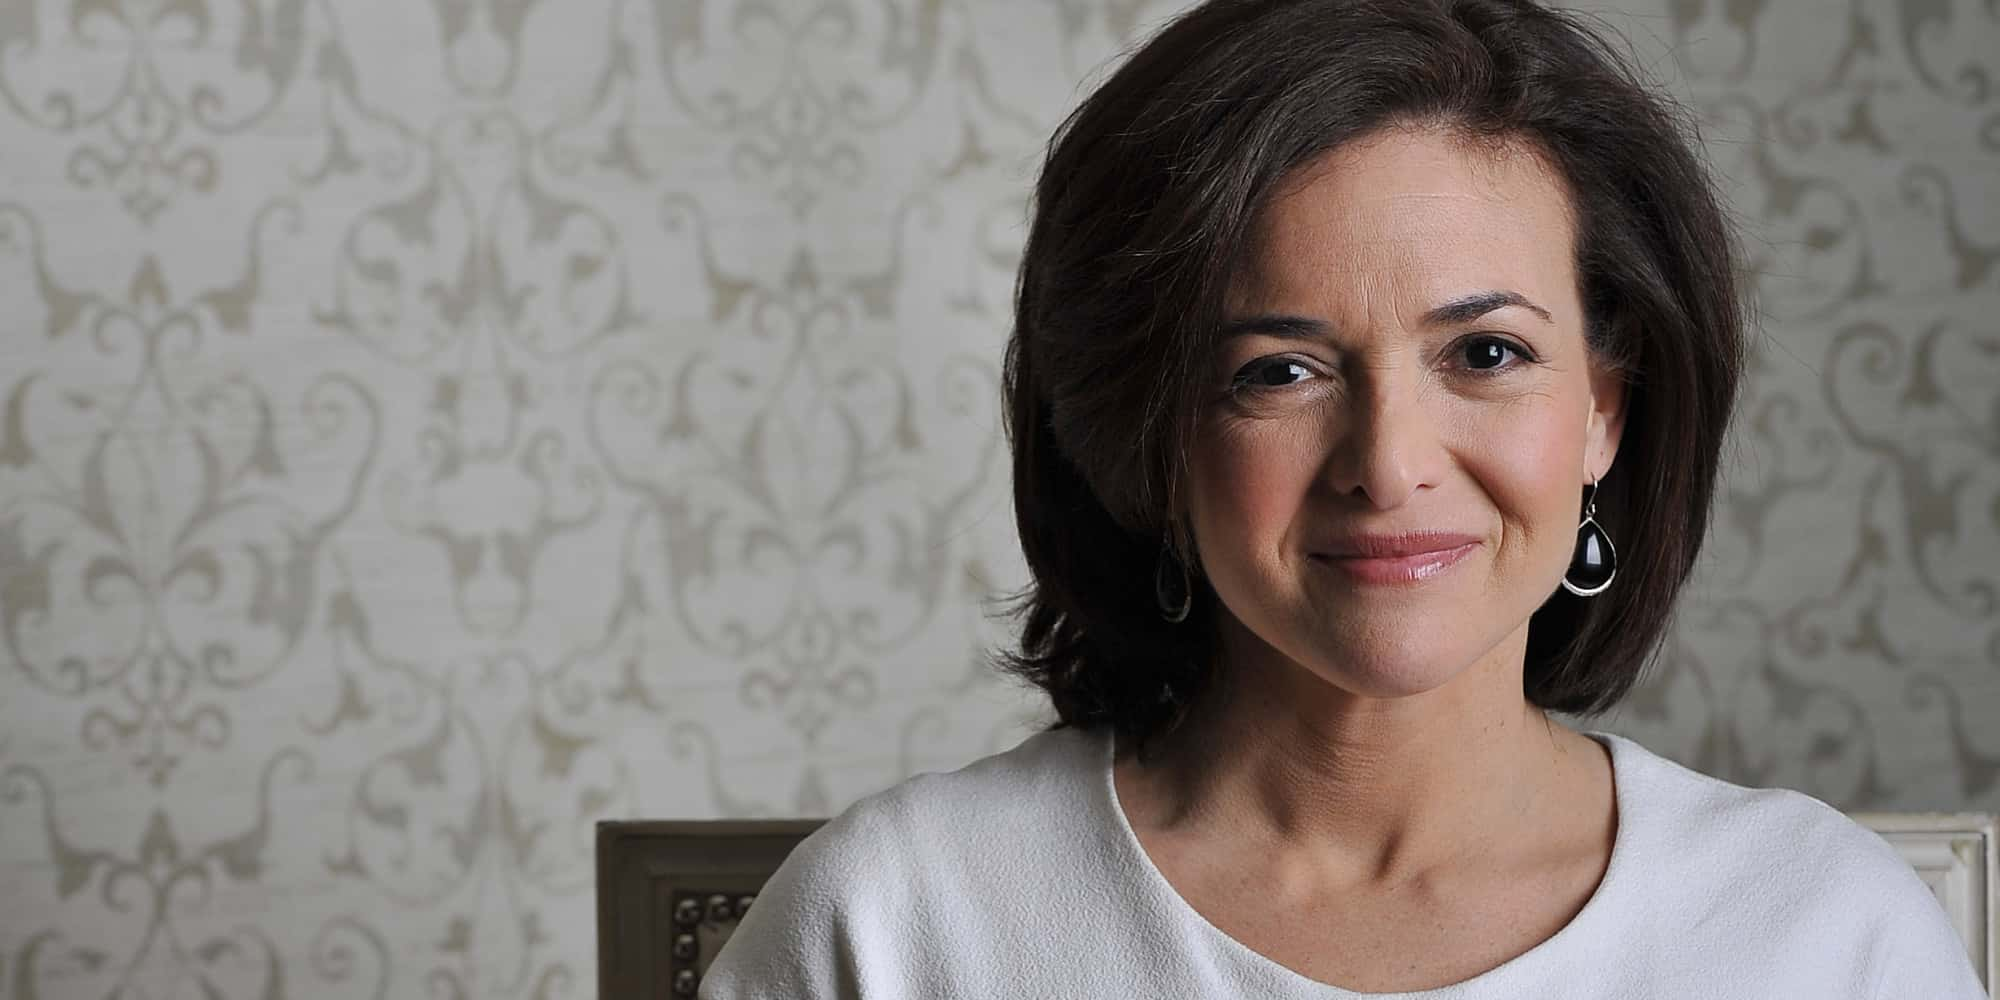 sheryl sandberg women in management essay Sheryl sandberg's first employees, according to her family, were her  it  accounts for why women are less eager than men to trumpet their management   a much-talked-about essay on why women can't have it all, sandberg.